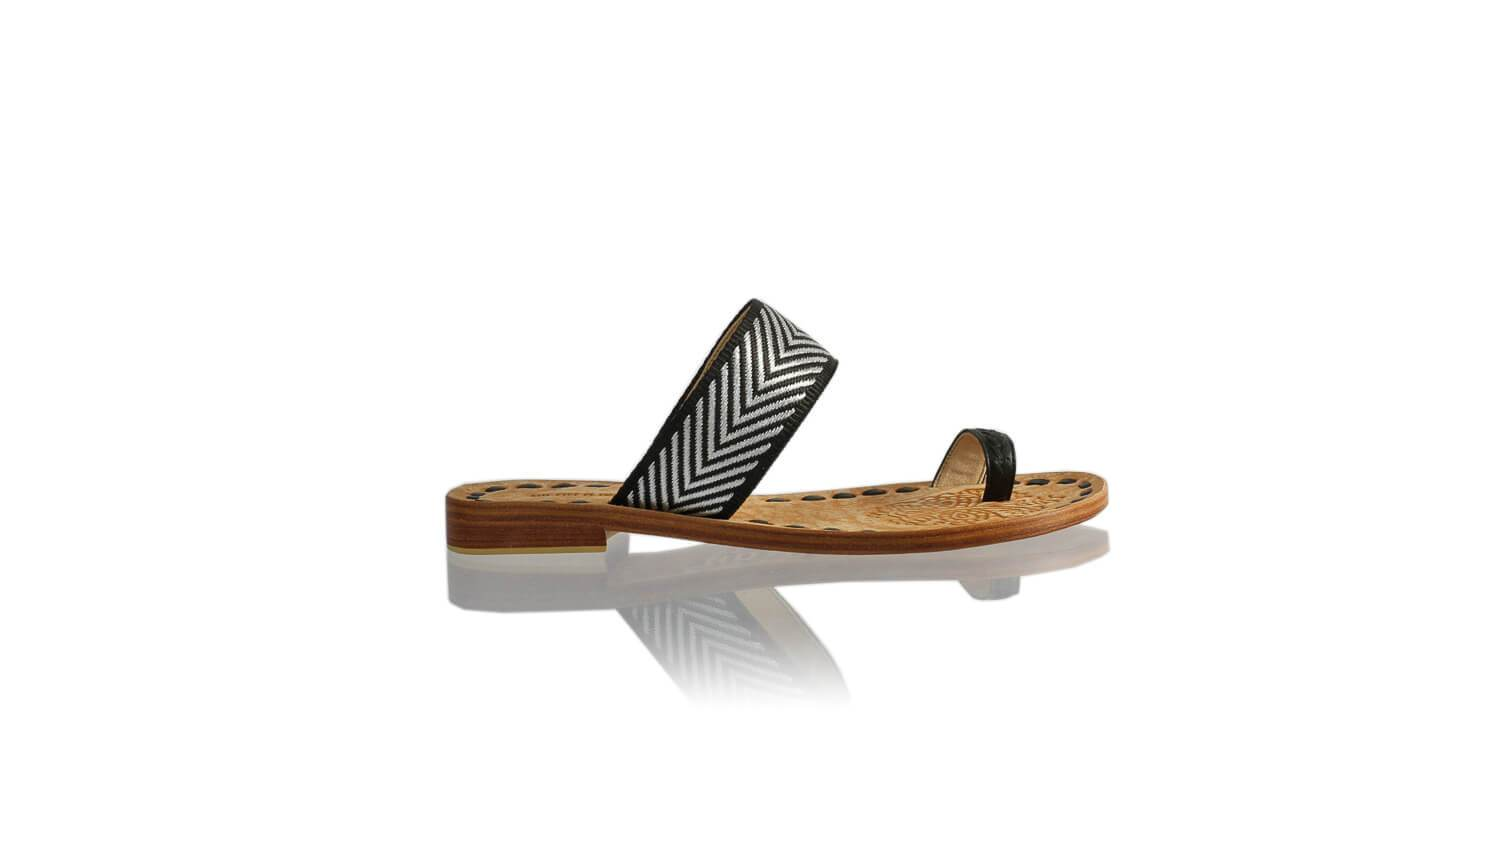 Leather-shoes-Arini 20mm Flat - Black & Black Silver Ribbon-sandals flat-NILUH DJELANTIK-NILUH DJELANTIK